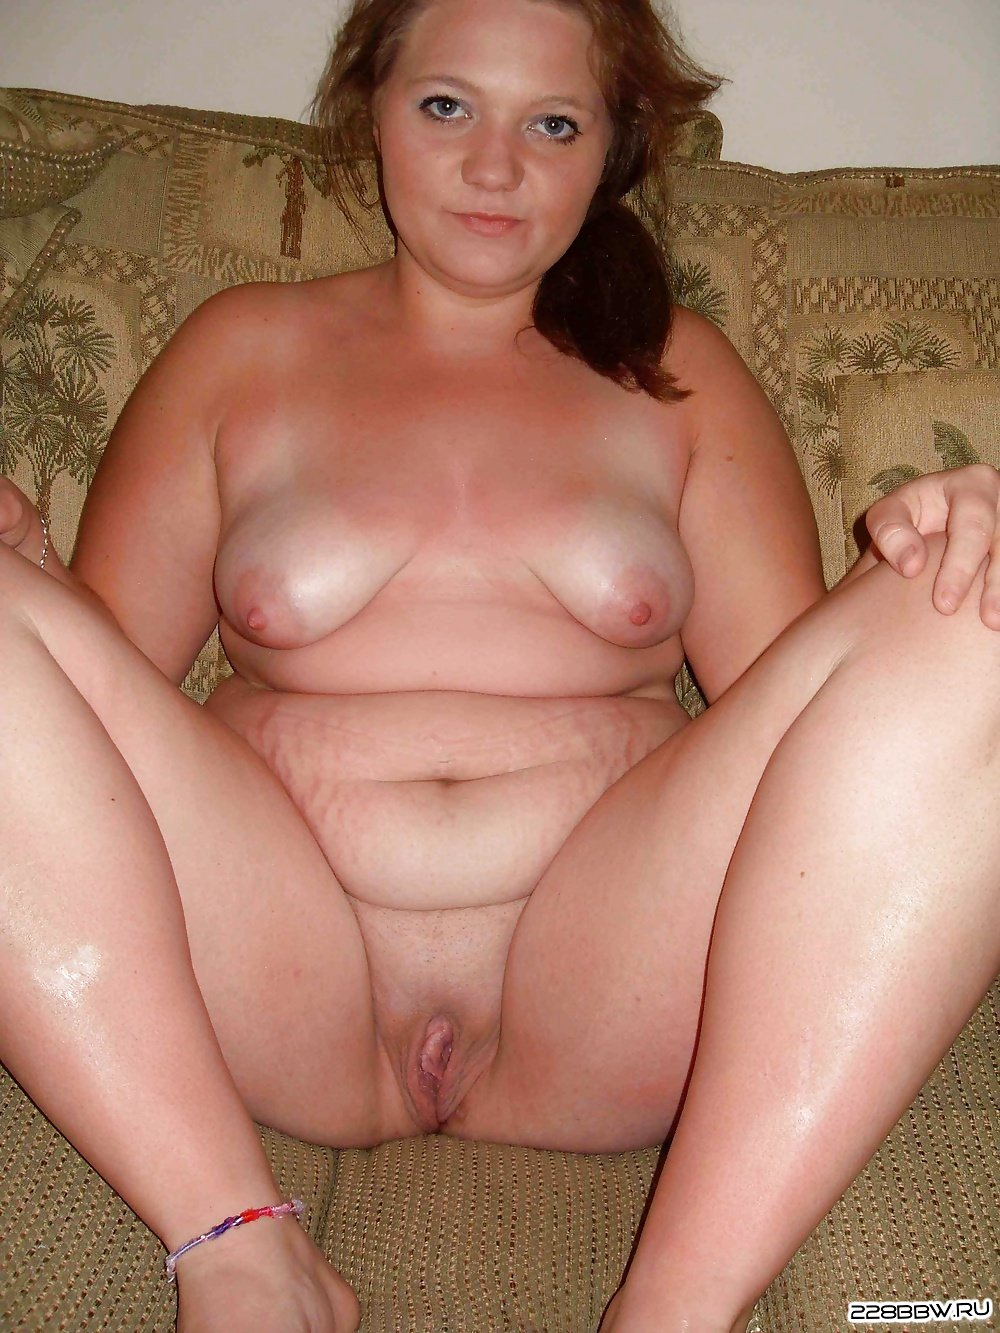 Wold fat nude woman adult busty porn star